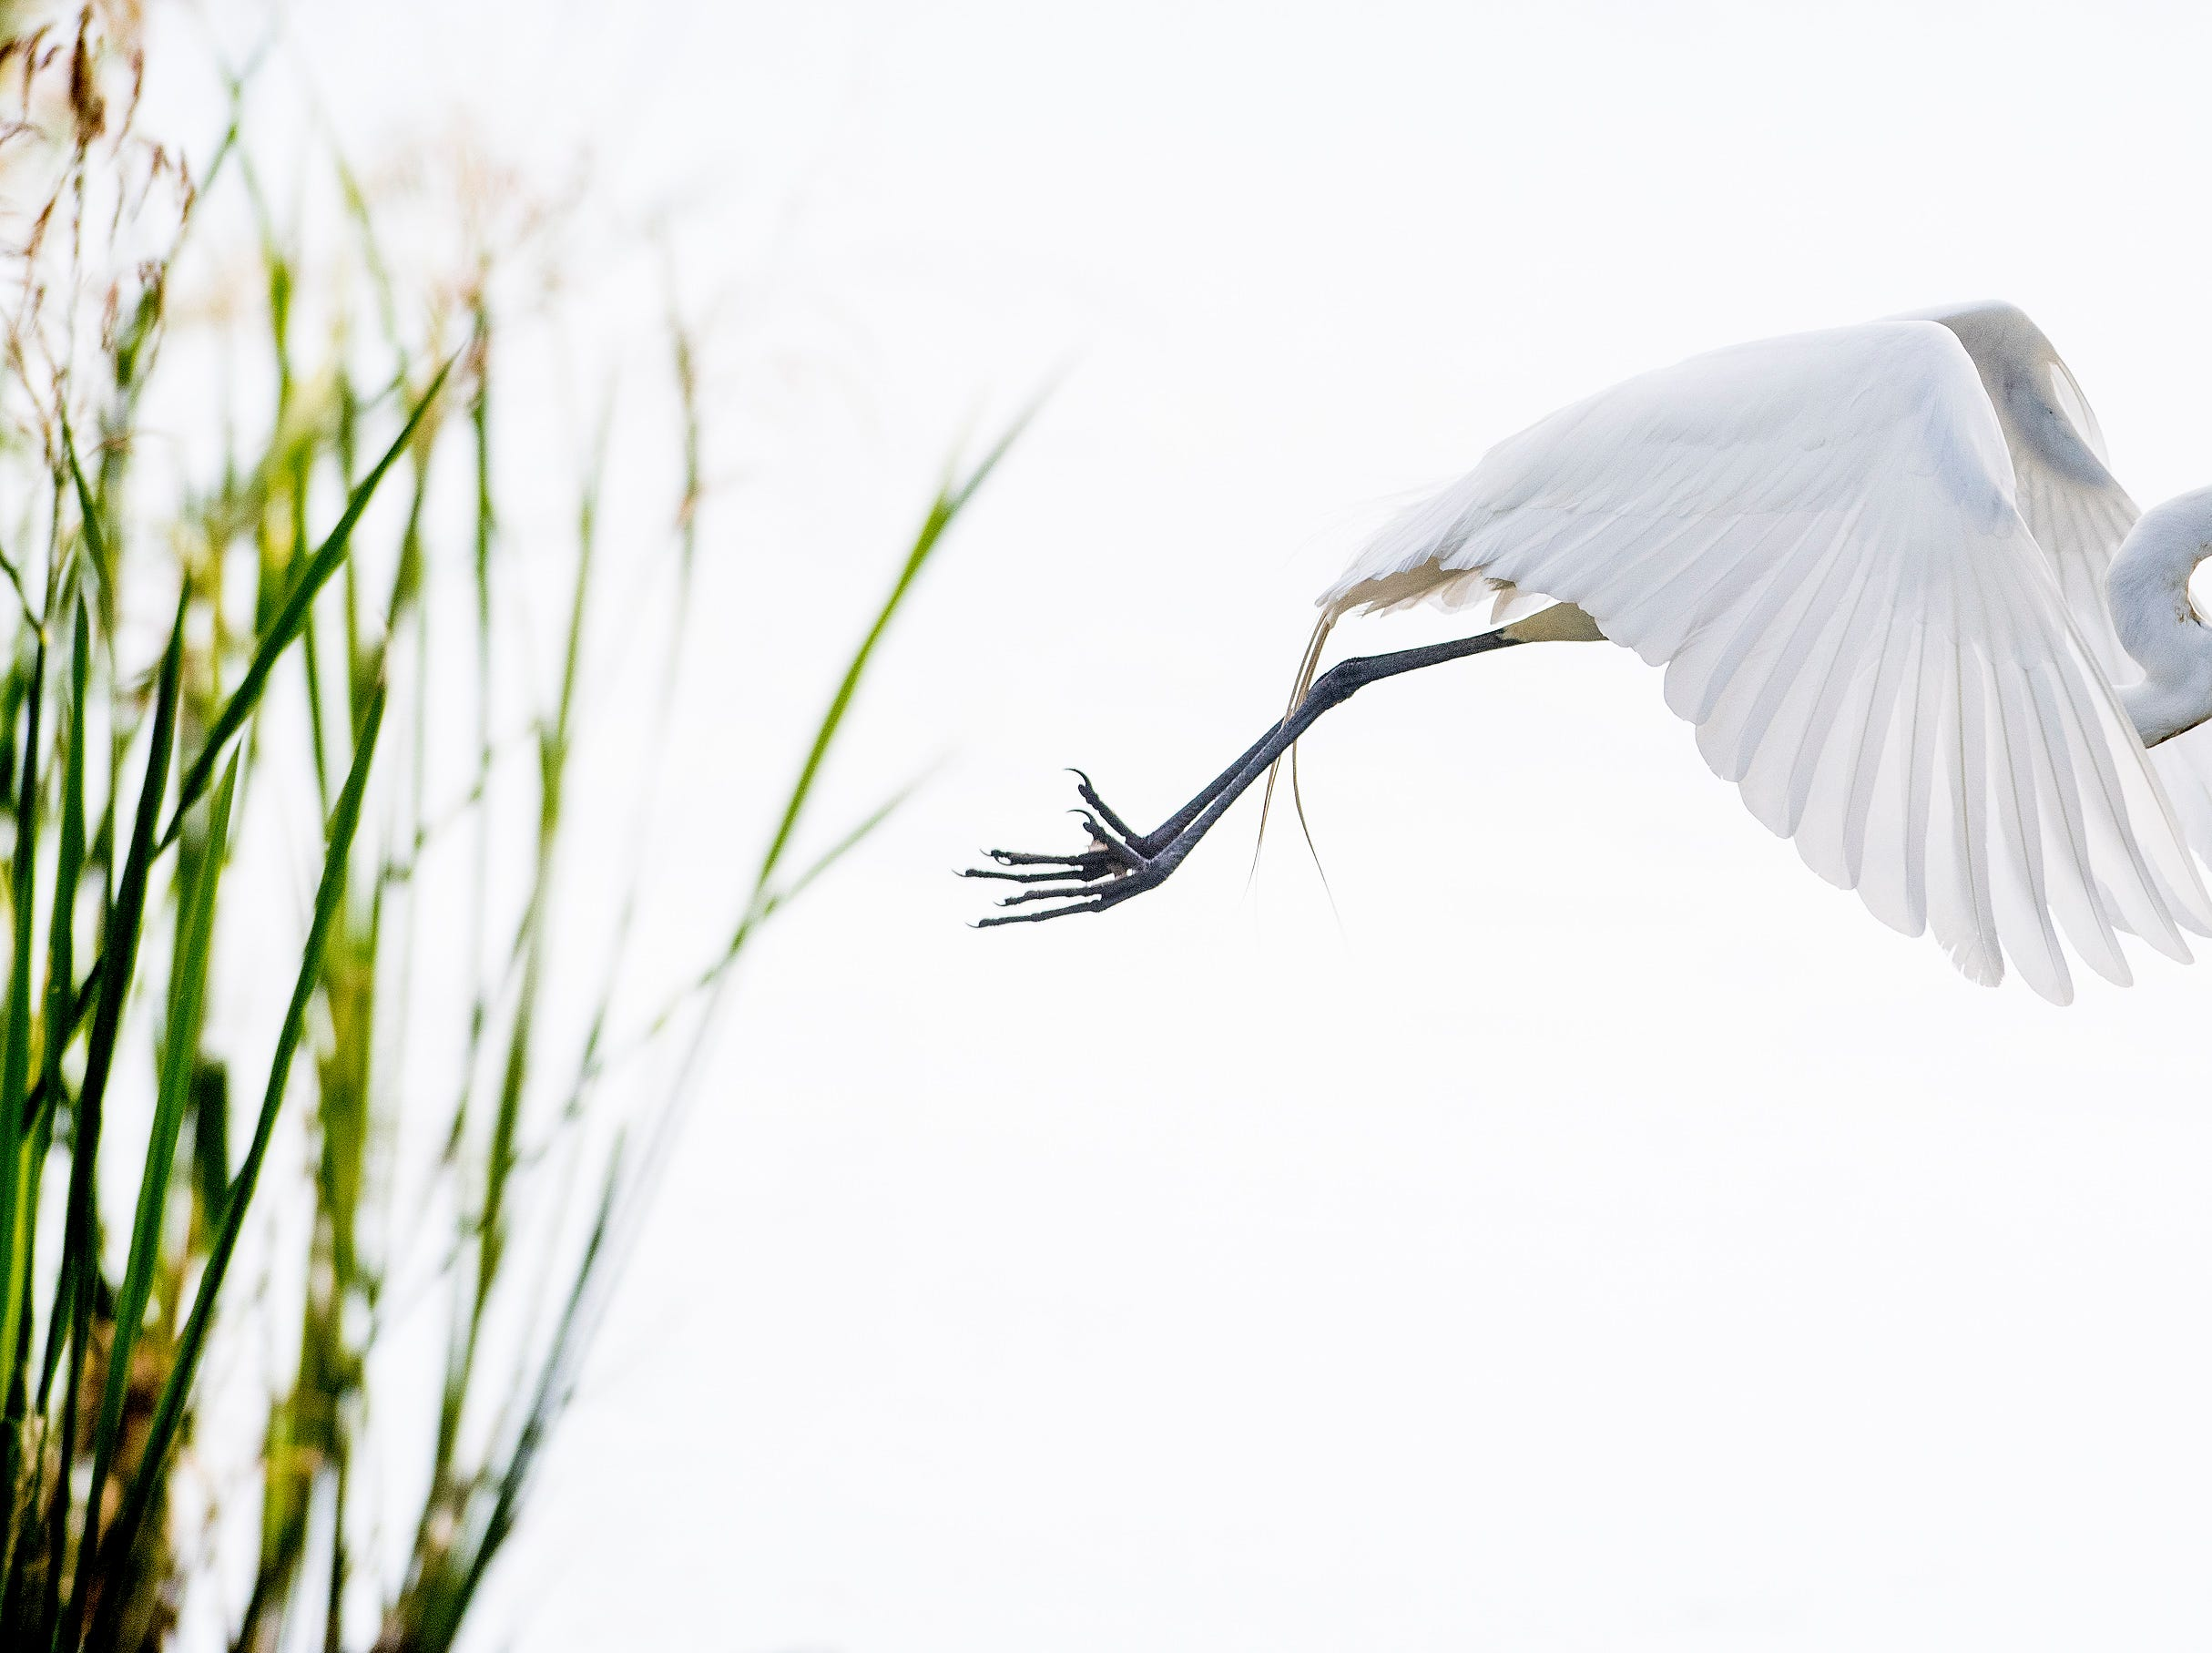 A great egret lifts off from it perch at Blount Cultural Park in Montgomery, Ala., on Tuesday May 8, 2018.